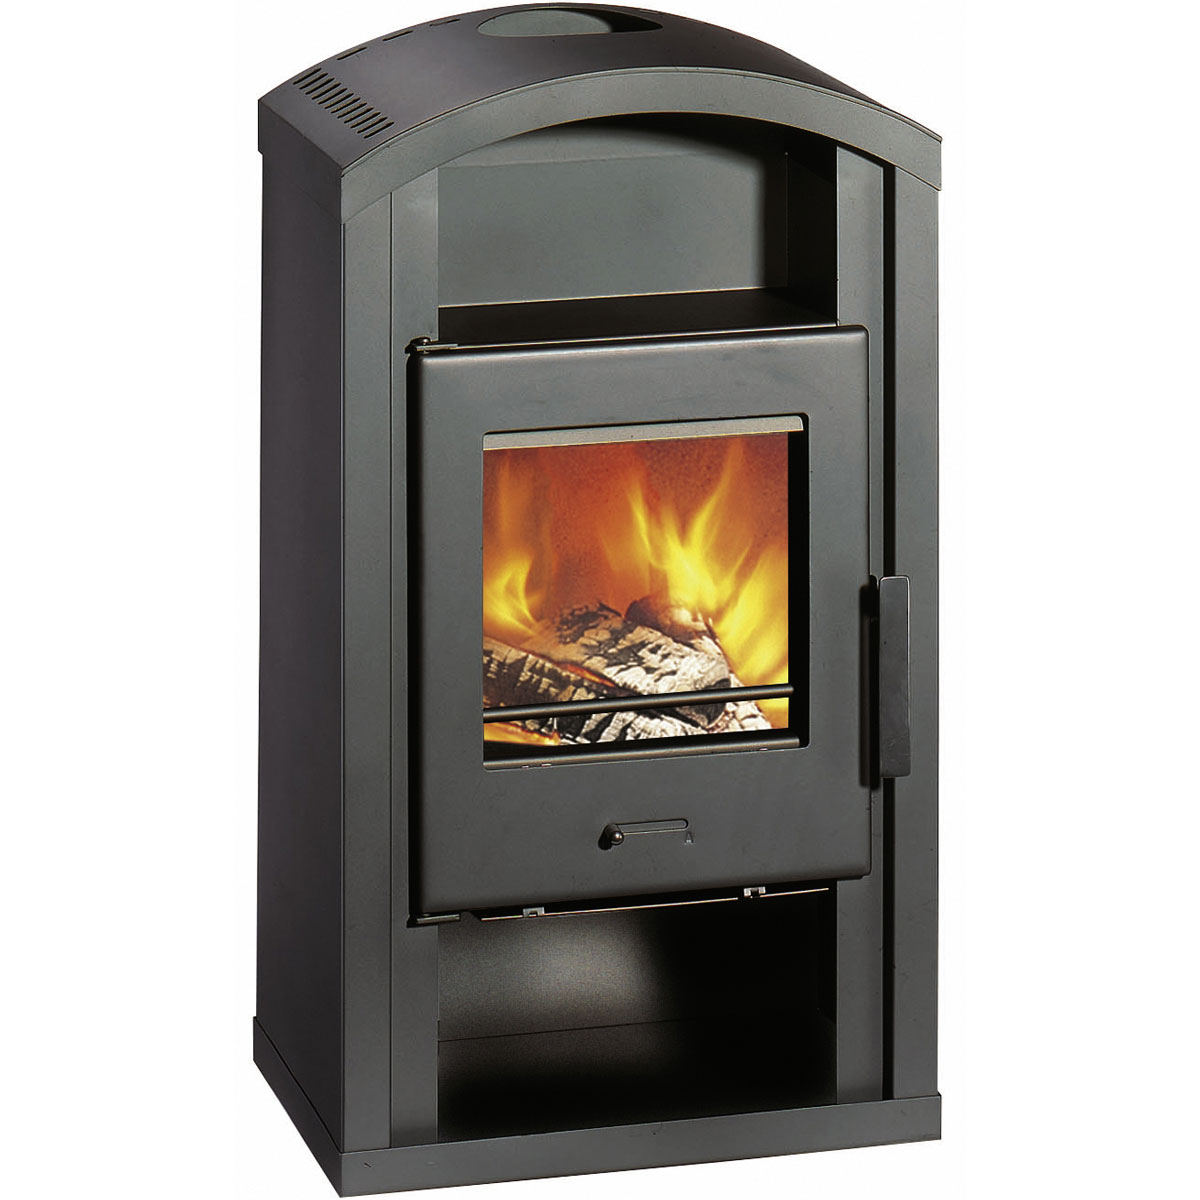 Wamsler Saturn Black Fireplace